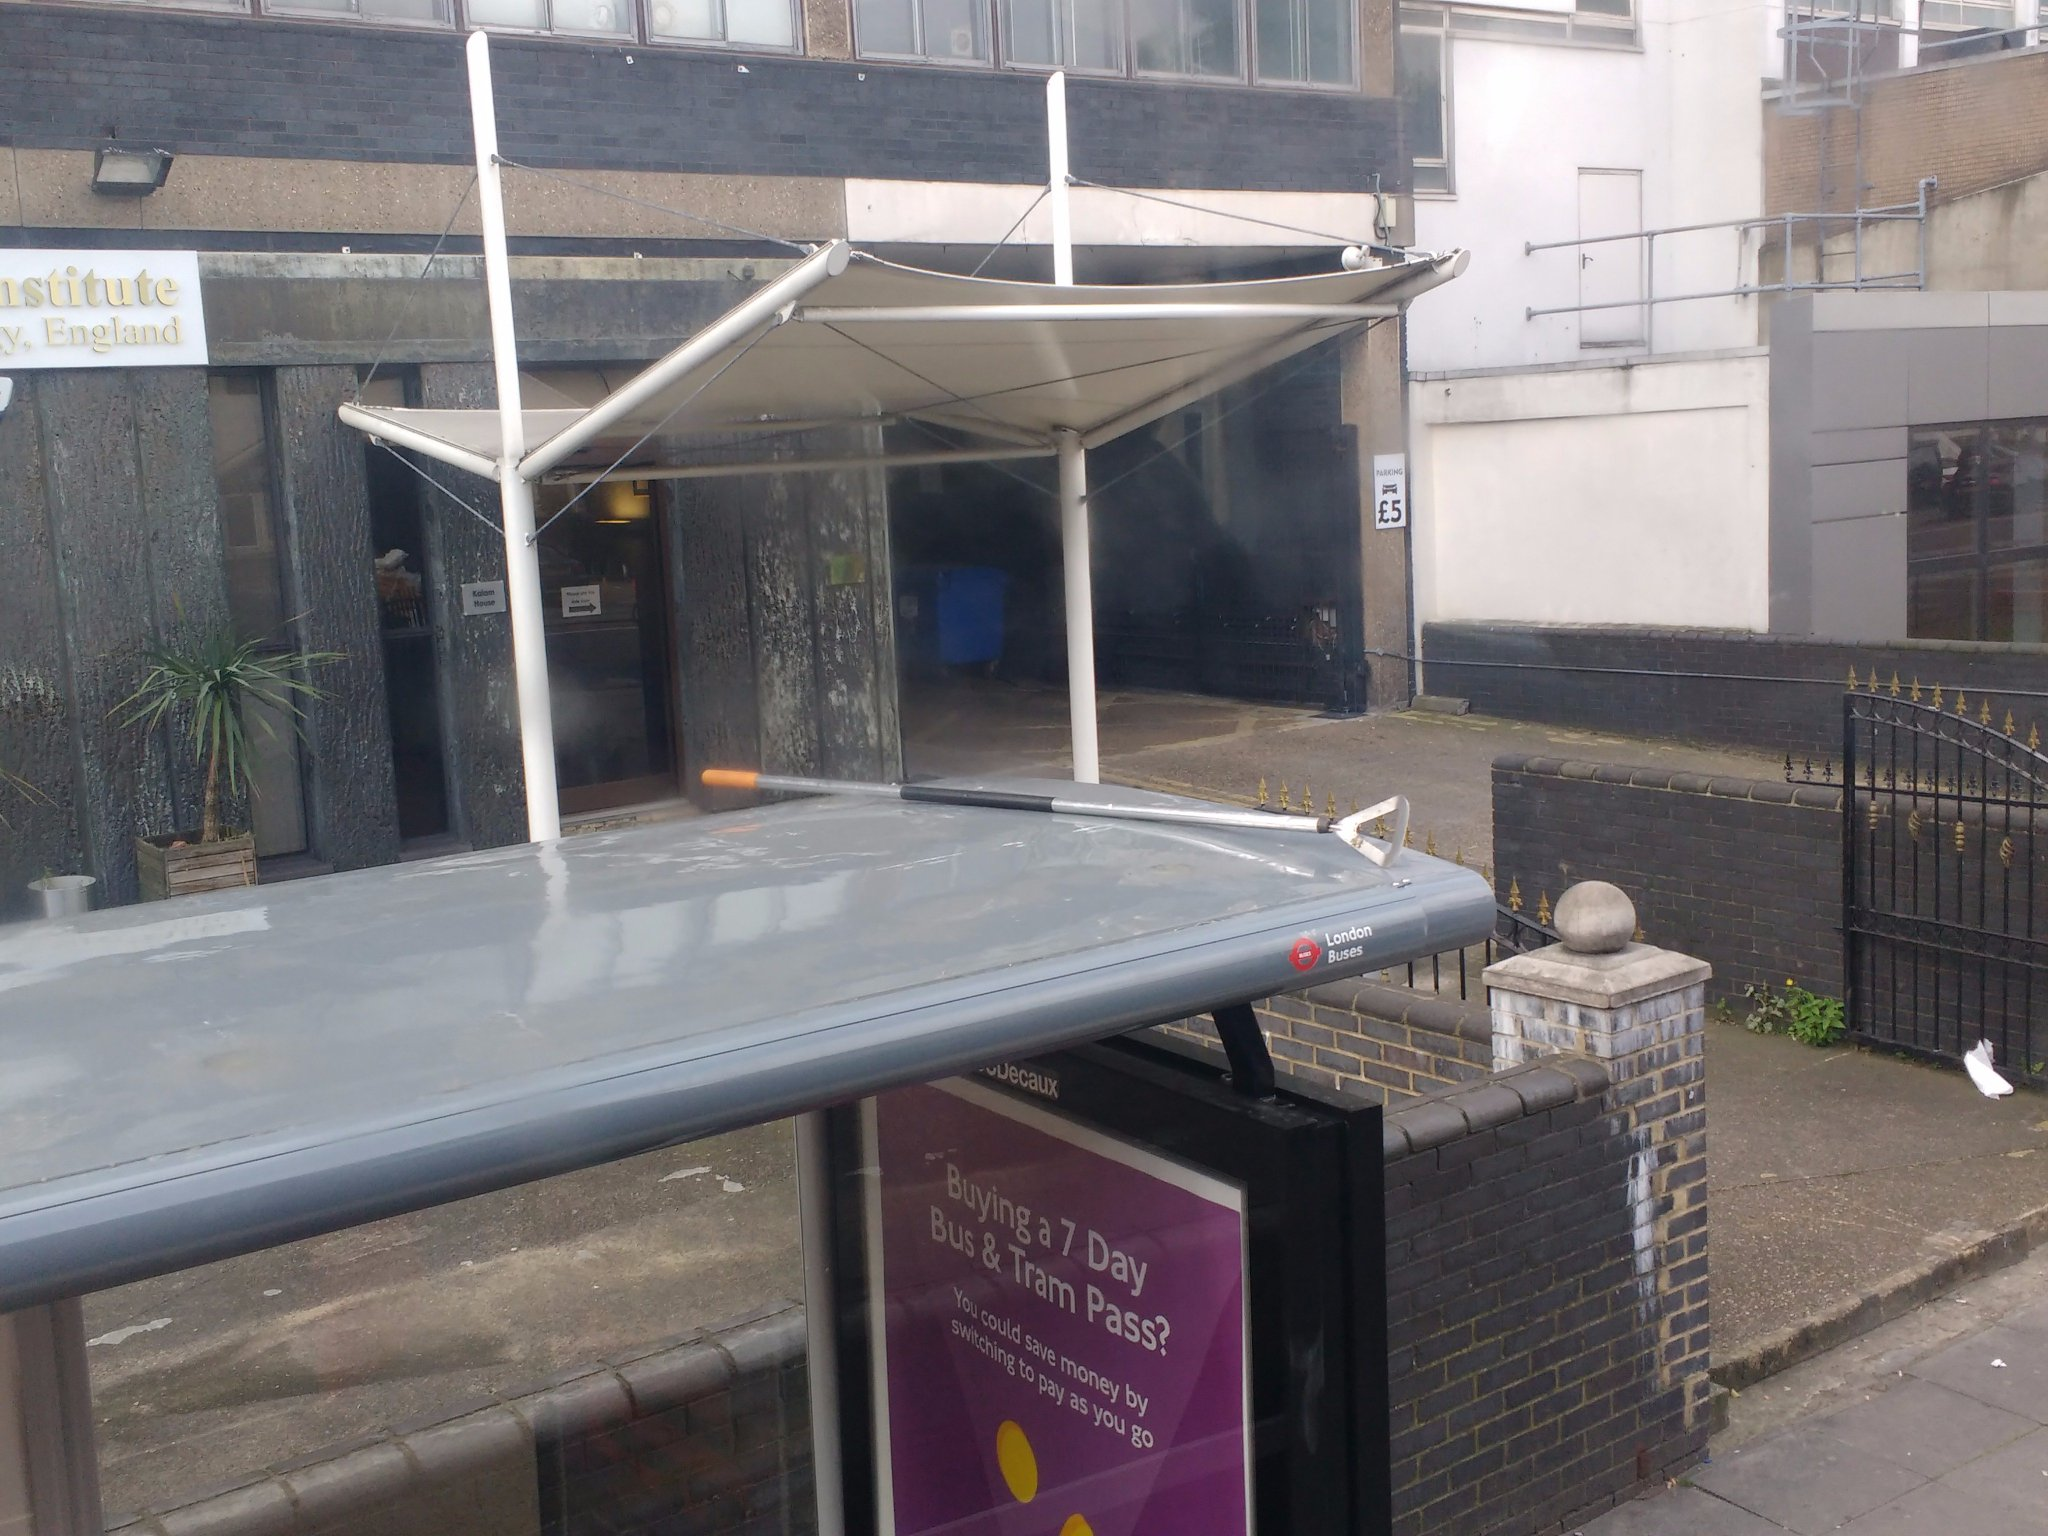 RT @AlisonDennison: @almurray  Hoe down on top of bus stop, Romford Road.  Is that some sort of cowboy party? https://t.co/GVOTvht51z